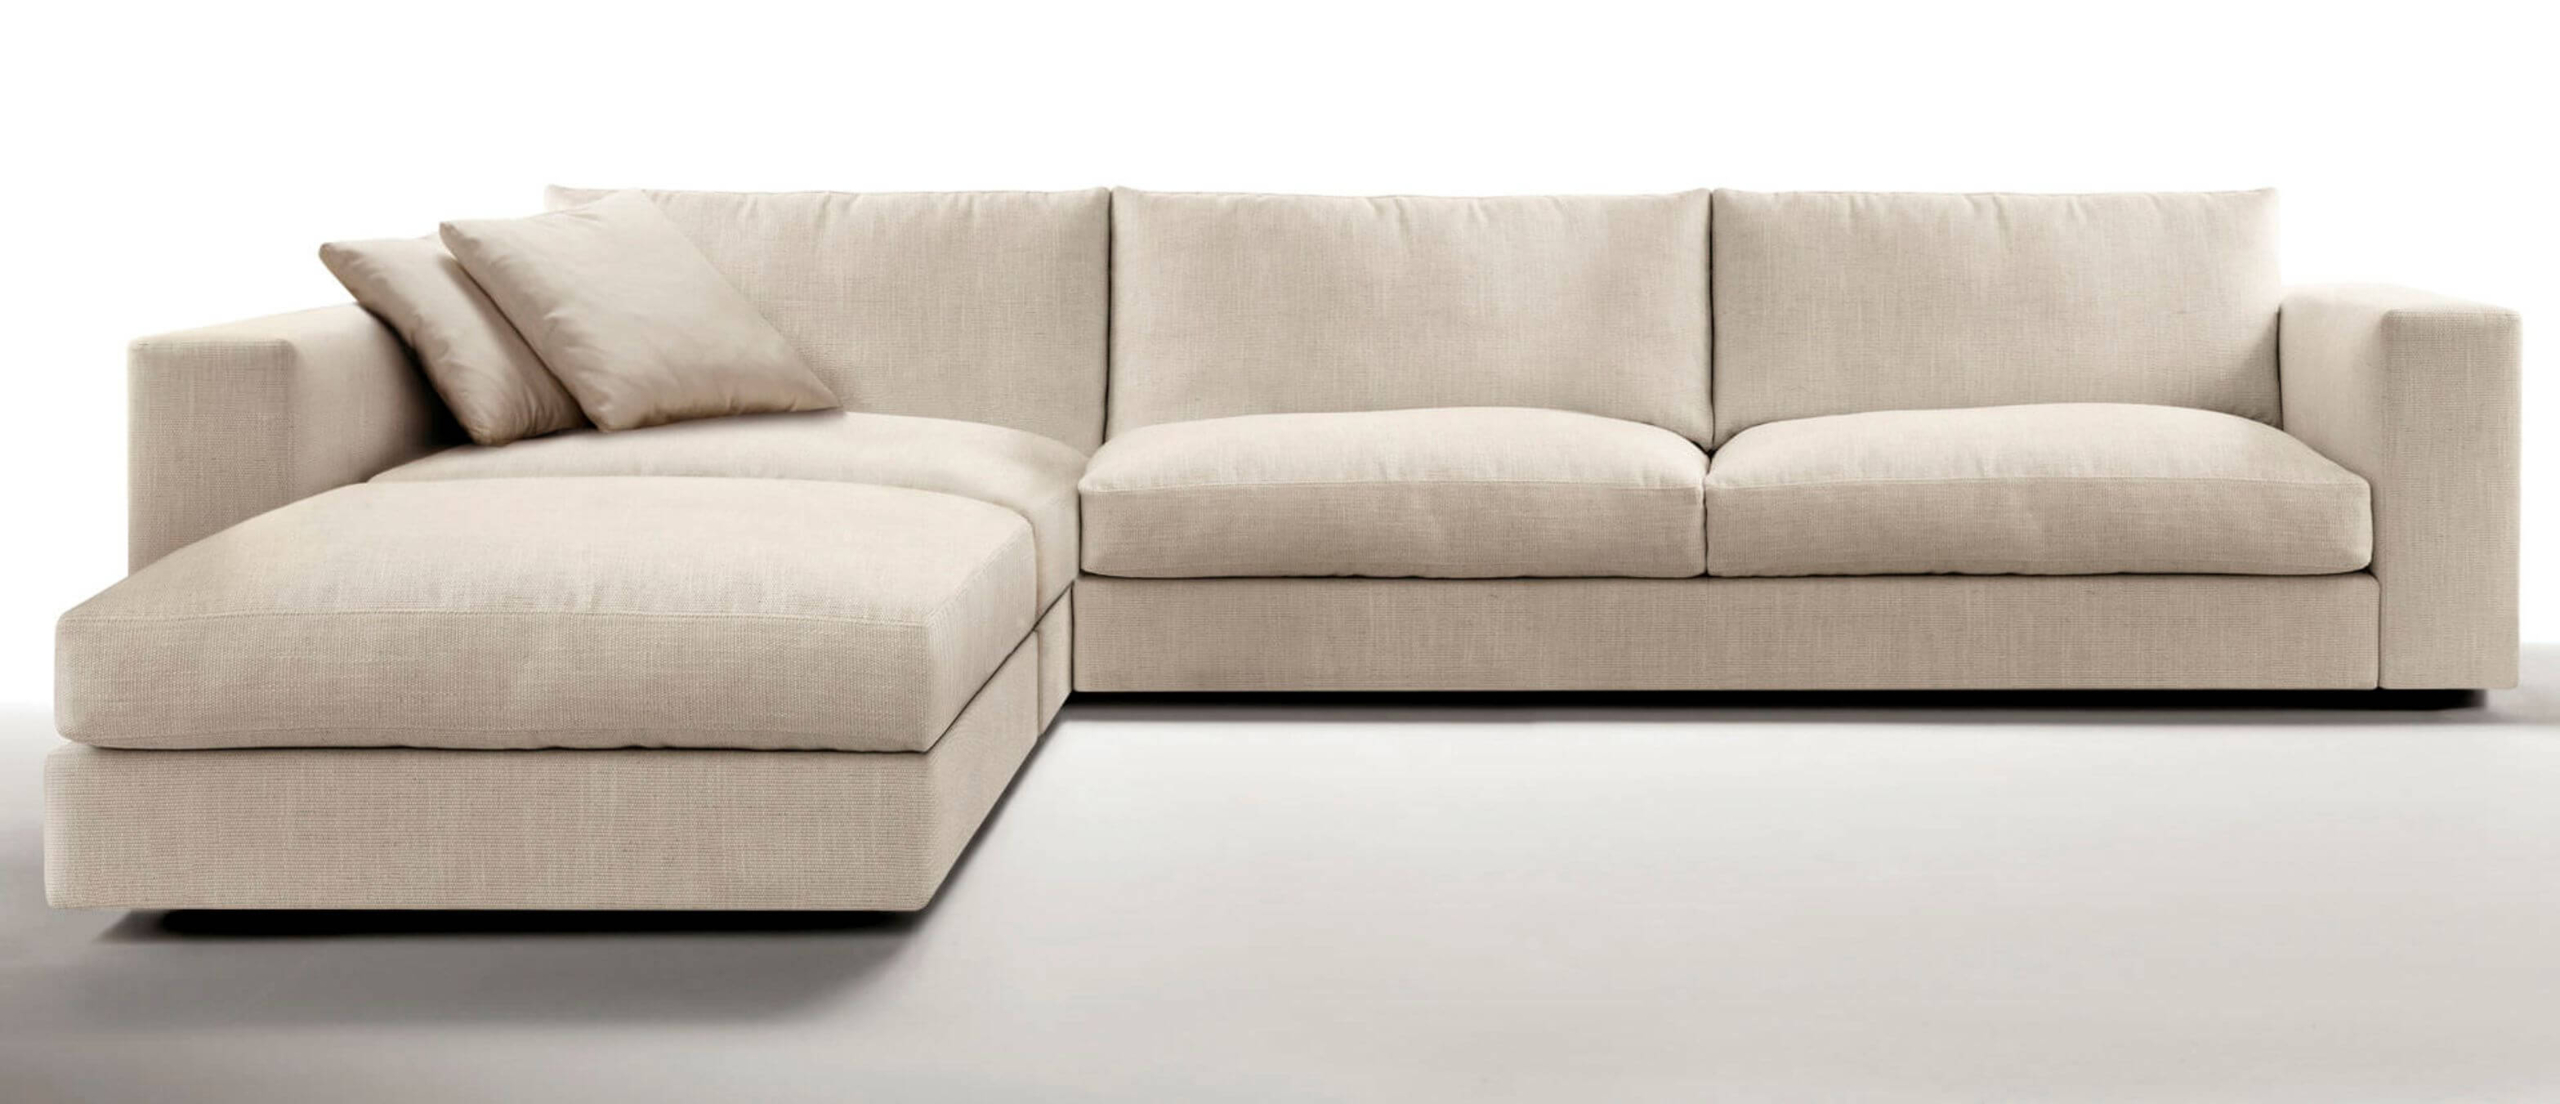 Superieur Modern Sectional Sleeper   Foter